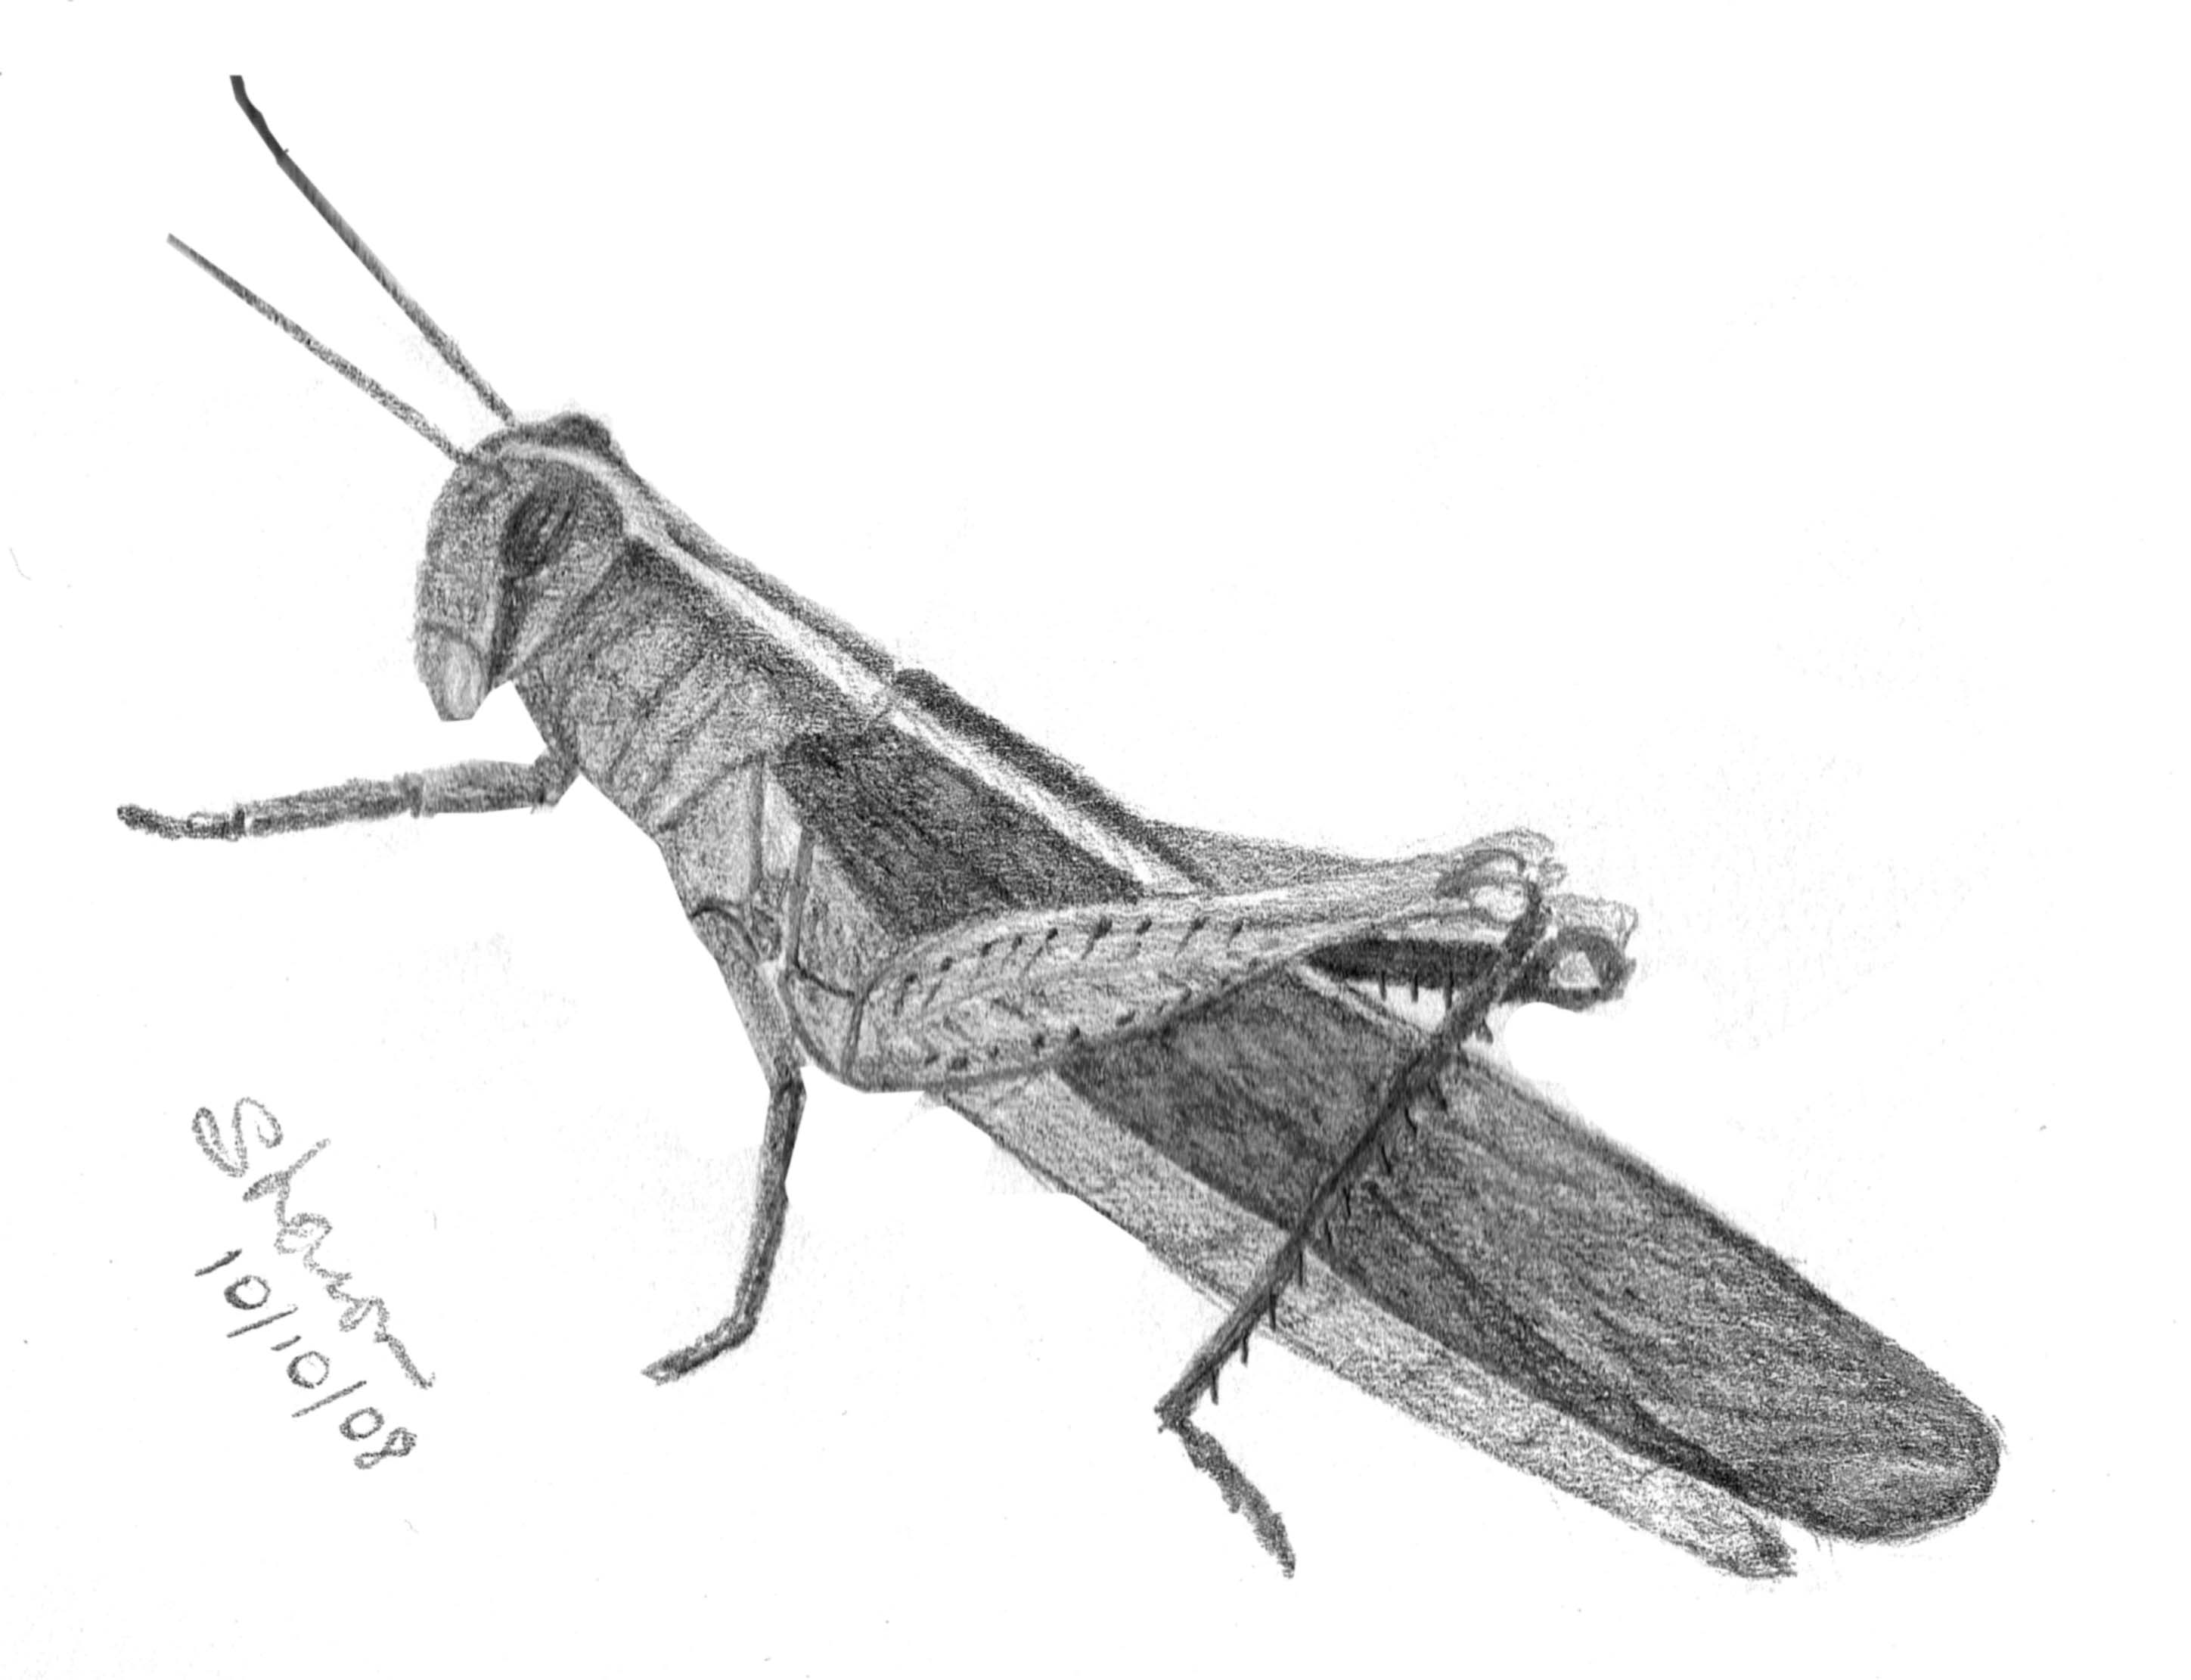 grasshopper drawing by scott woyak realistic grasshopper drawing free grasshopper drawing